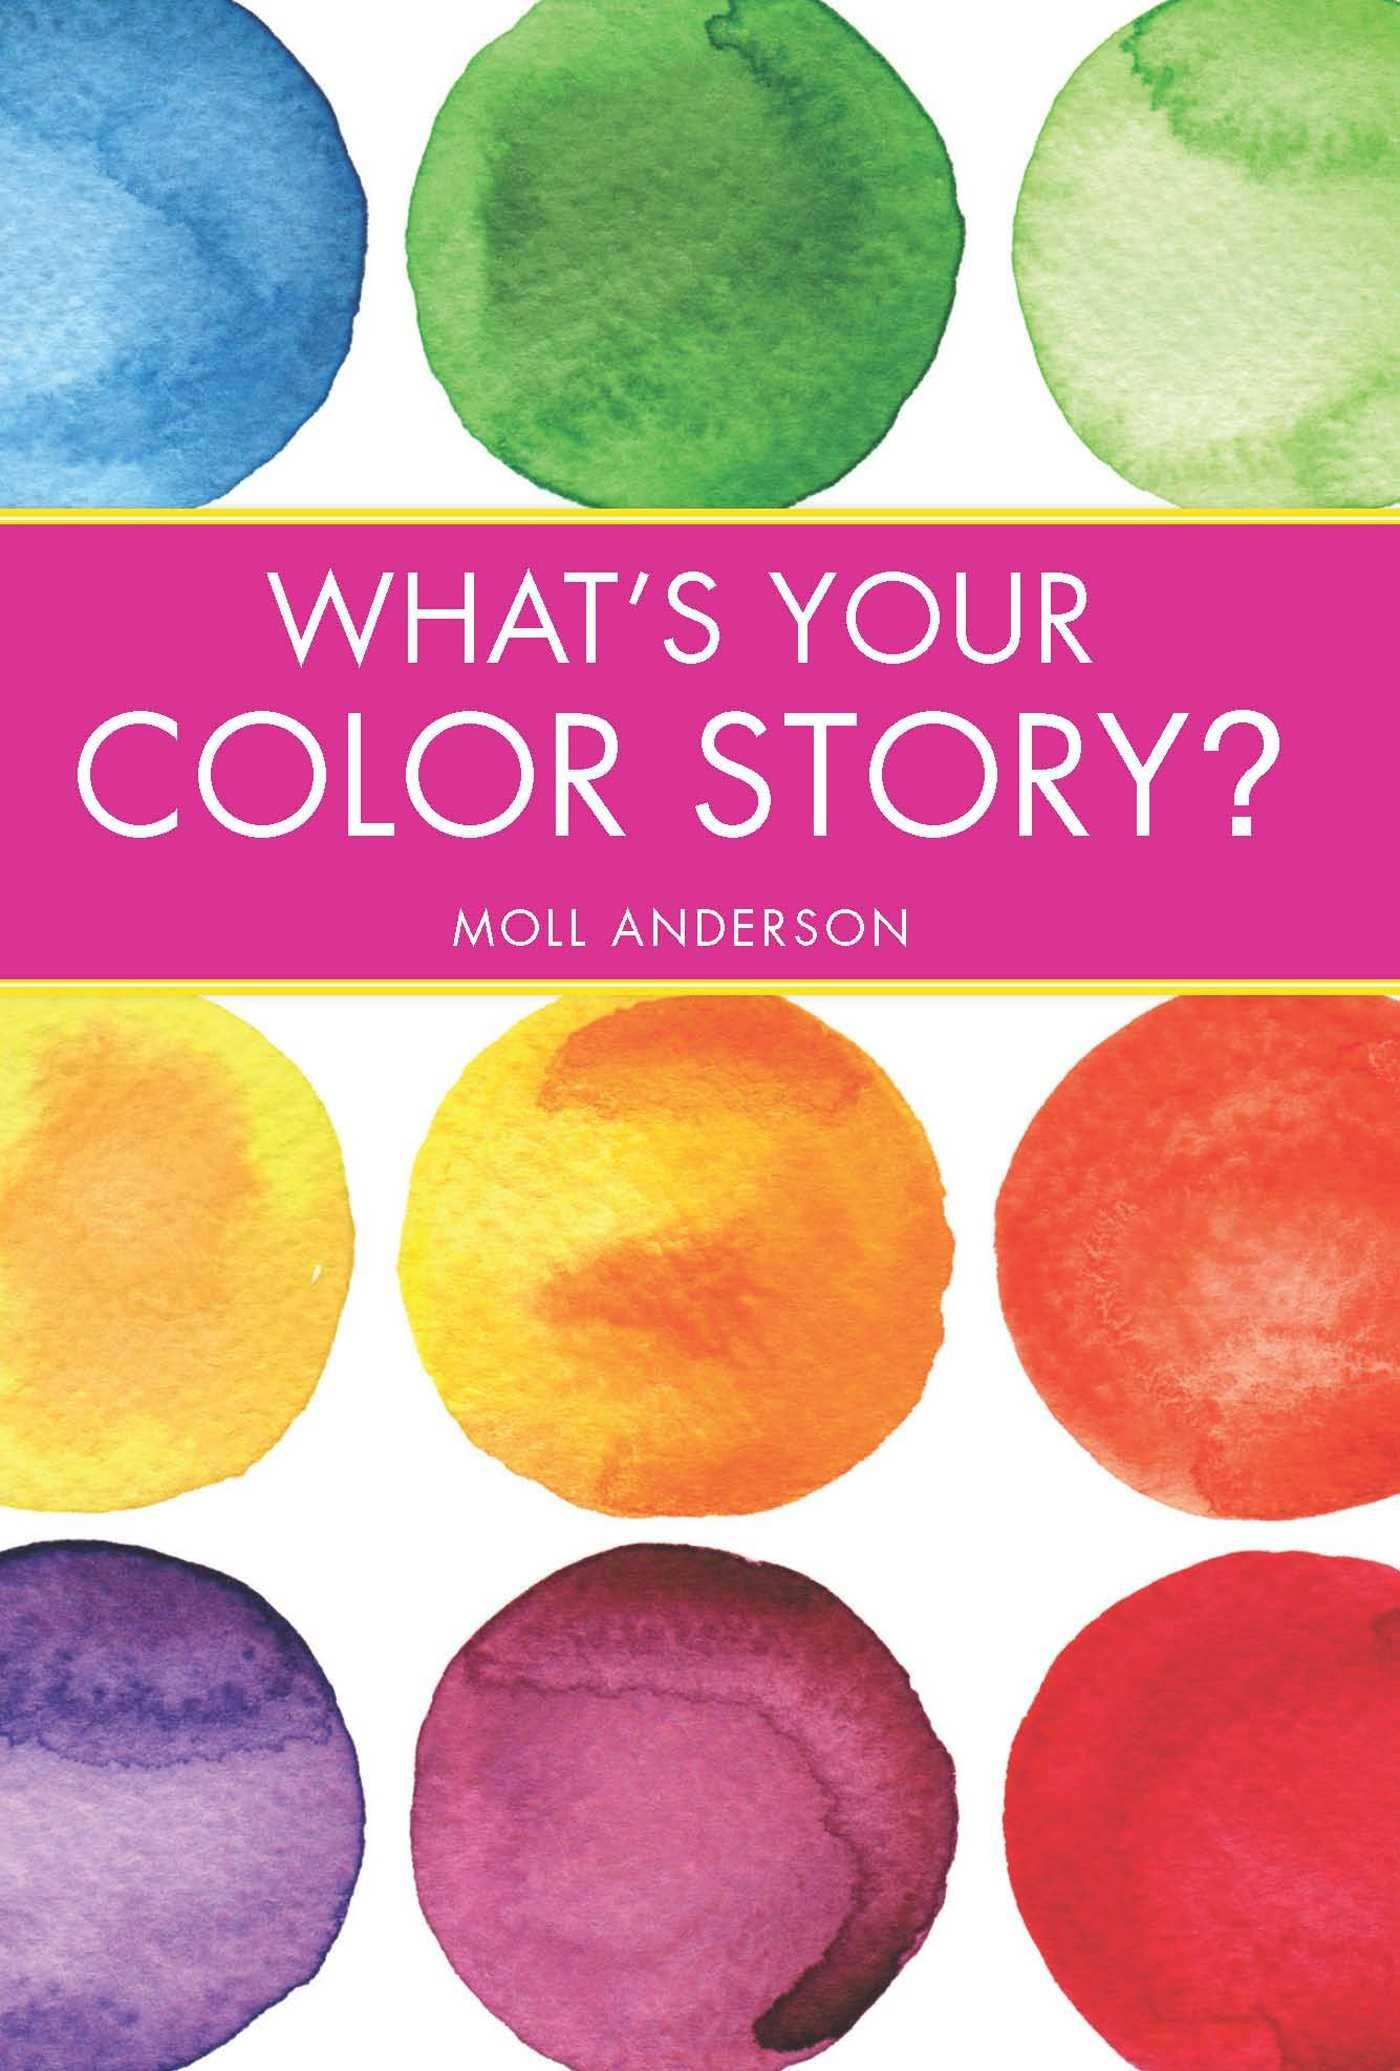 Read Online What's Your Color Story?: A Guided Journal Coloring Book to Spark Your Creative Energy and Ignite Your Love of Color PDF ePub book